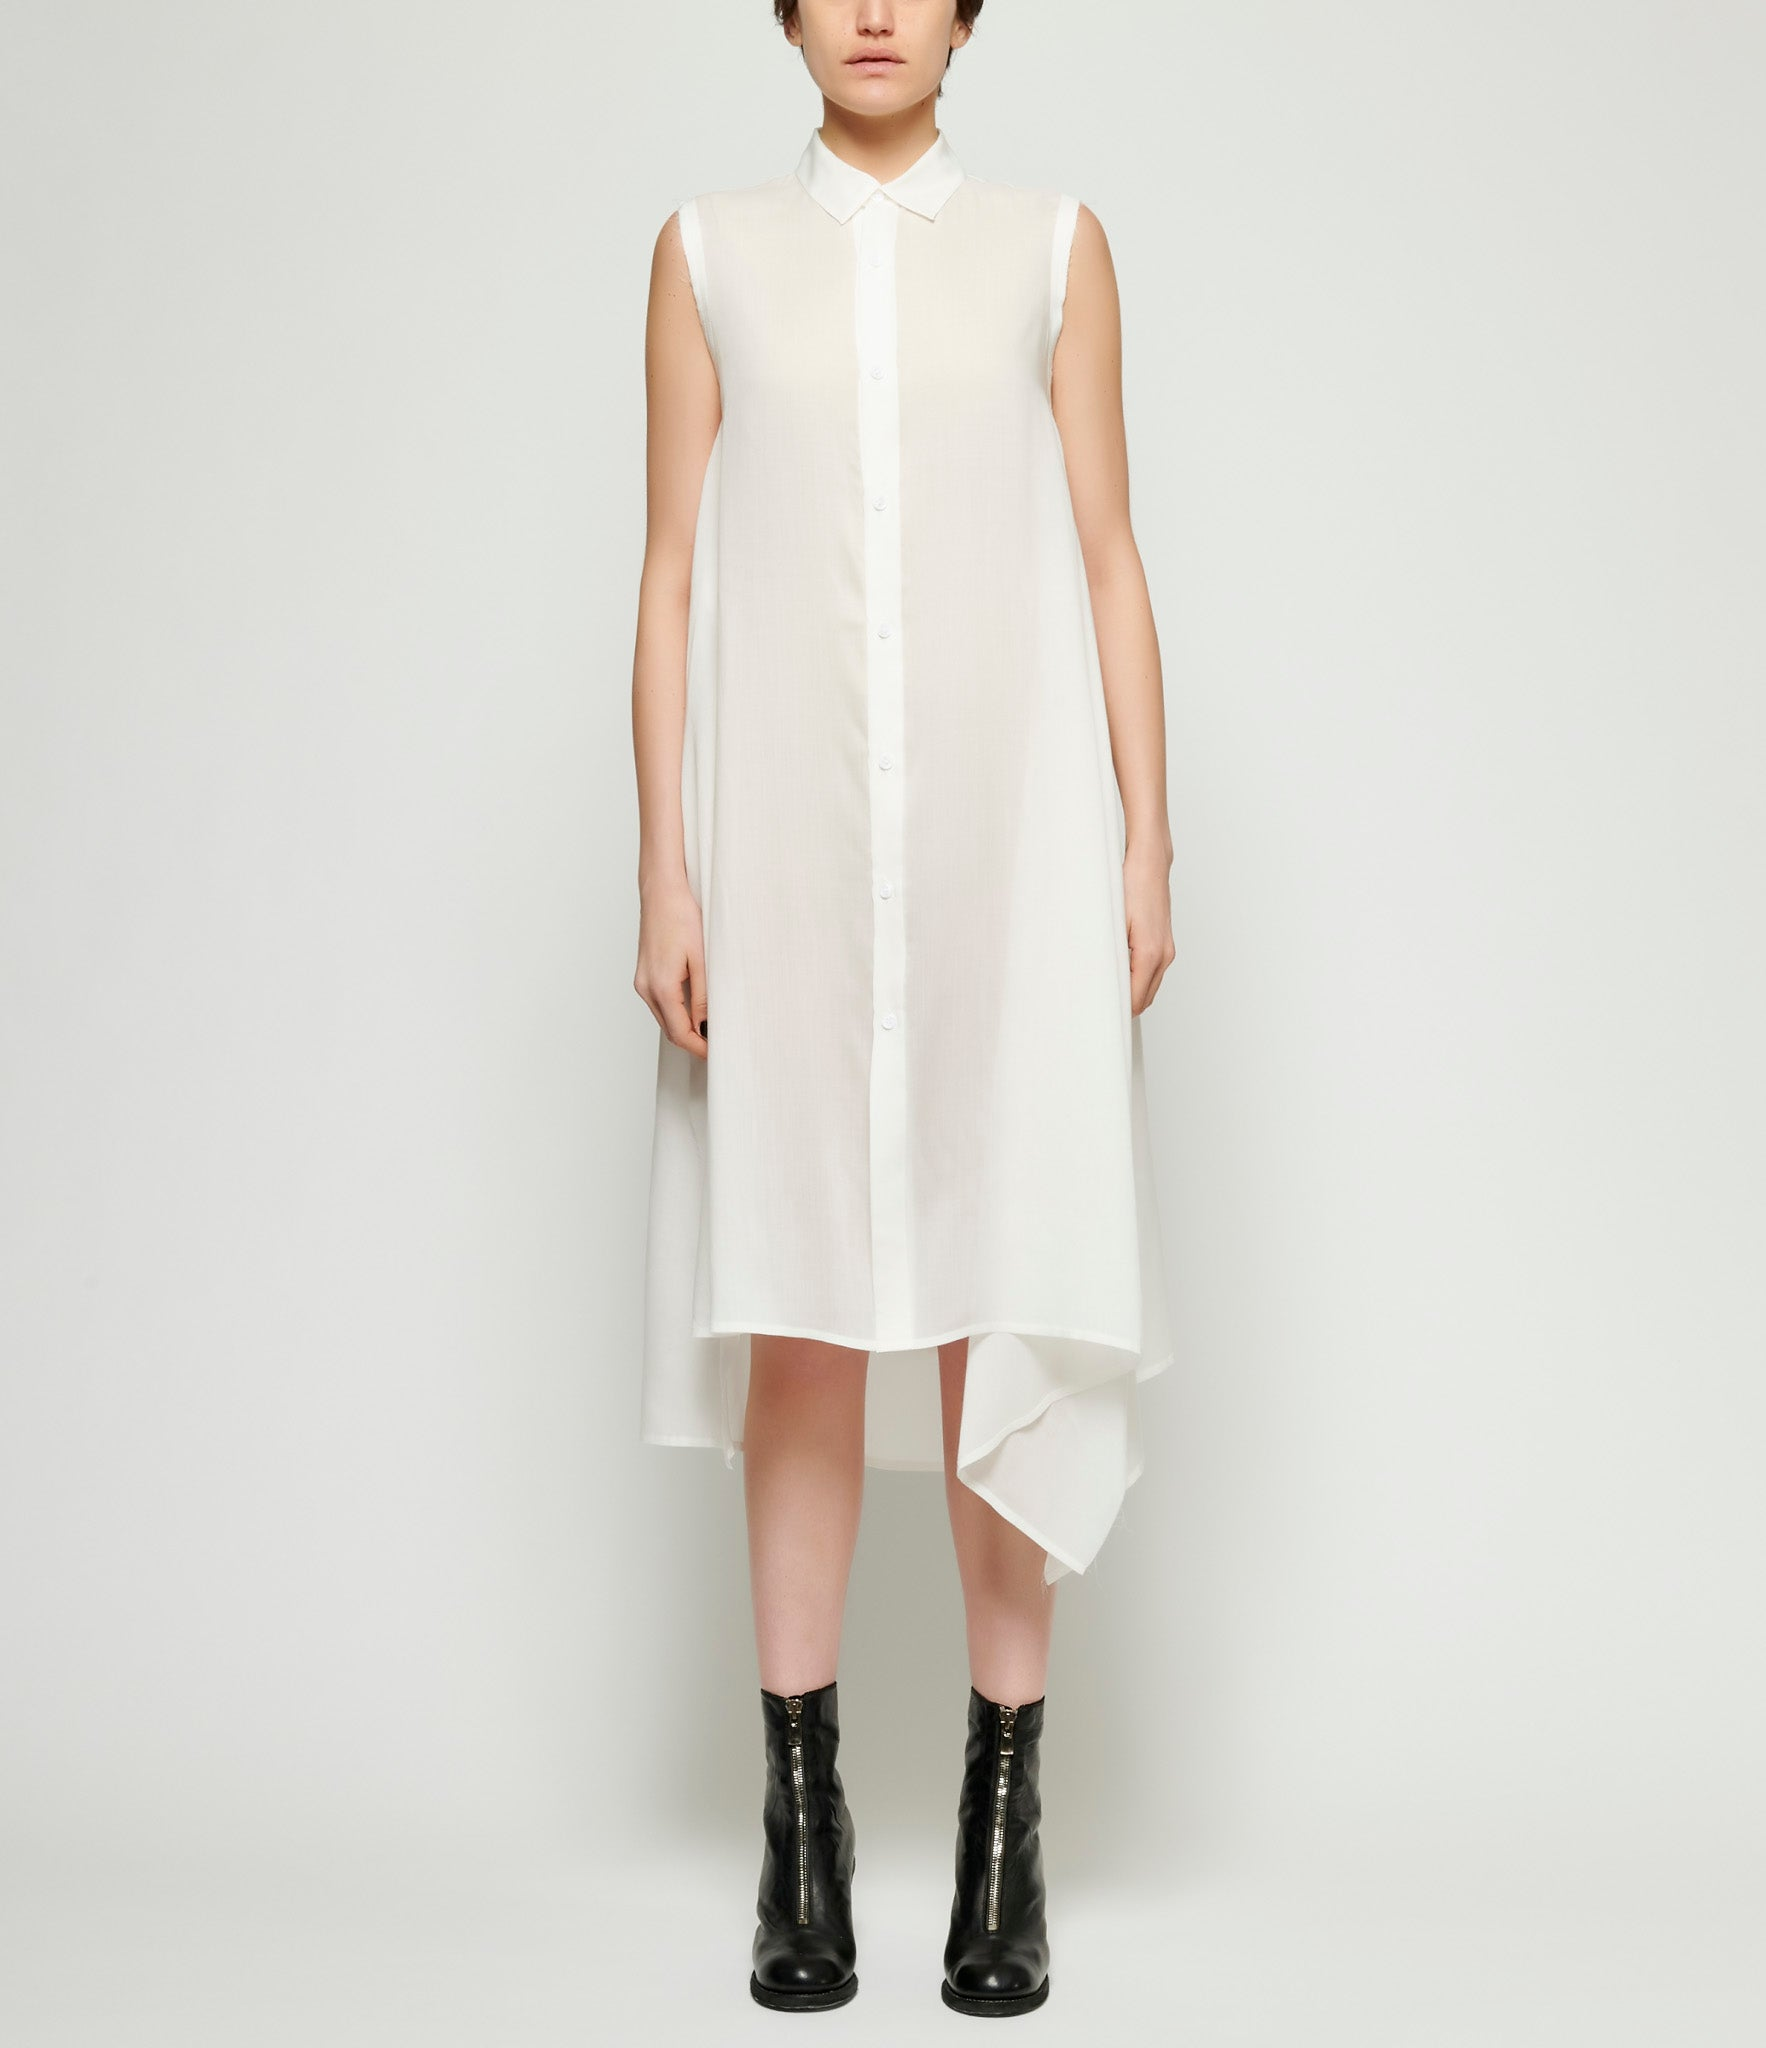 Yohji Yamamoto Over Layered Dress